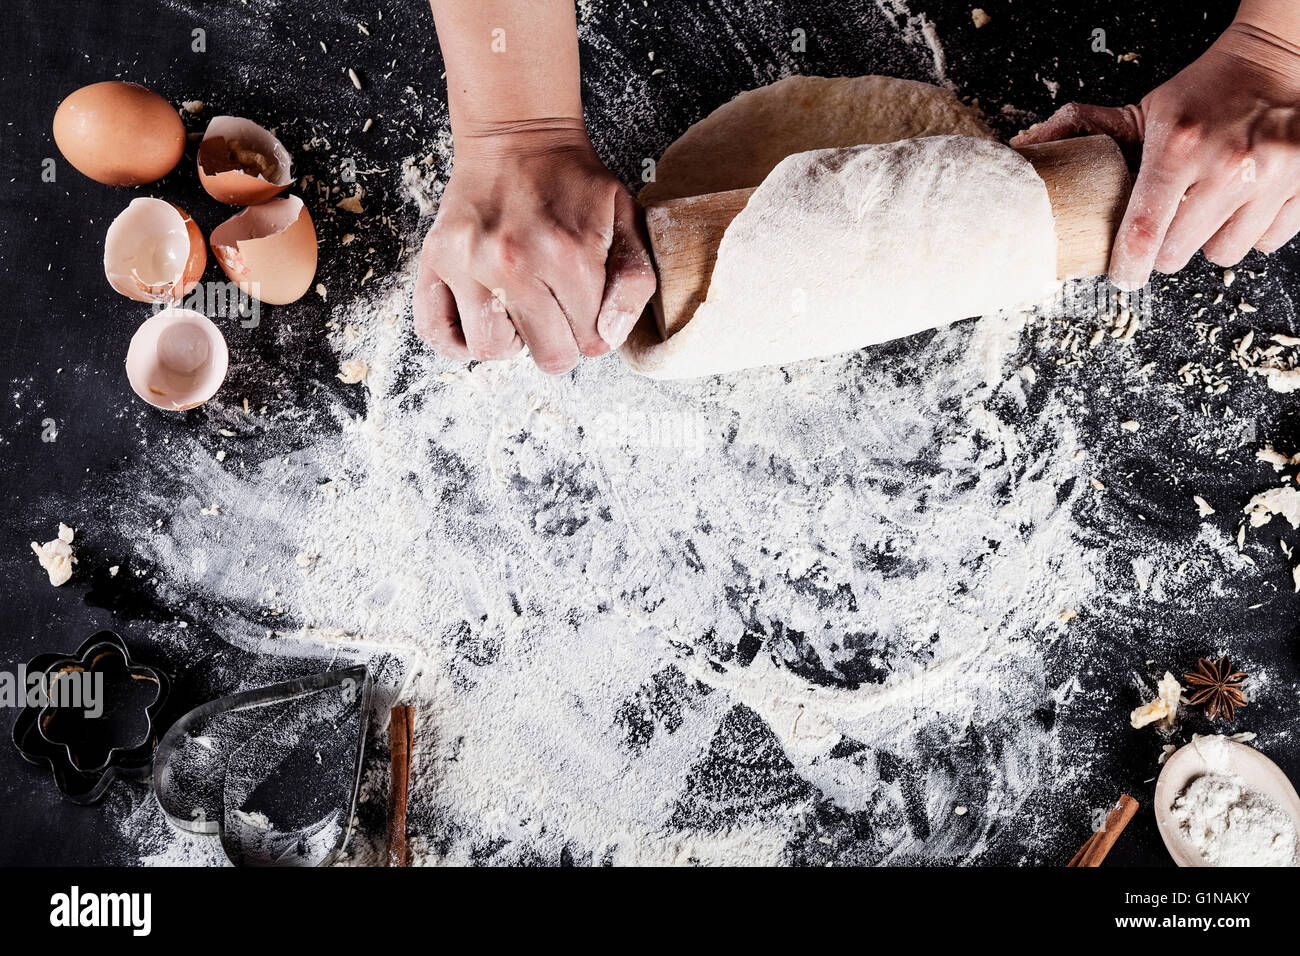 Making of cookies with ingredients like eggs, flour, cinnamon, anise, rolling pin, paper on blackboard from the Stock Photo